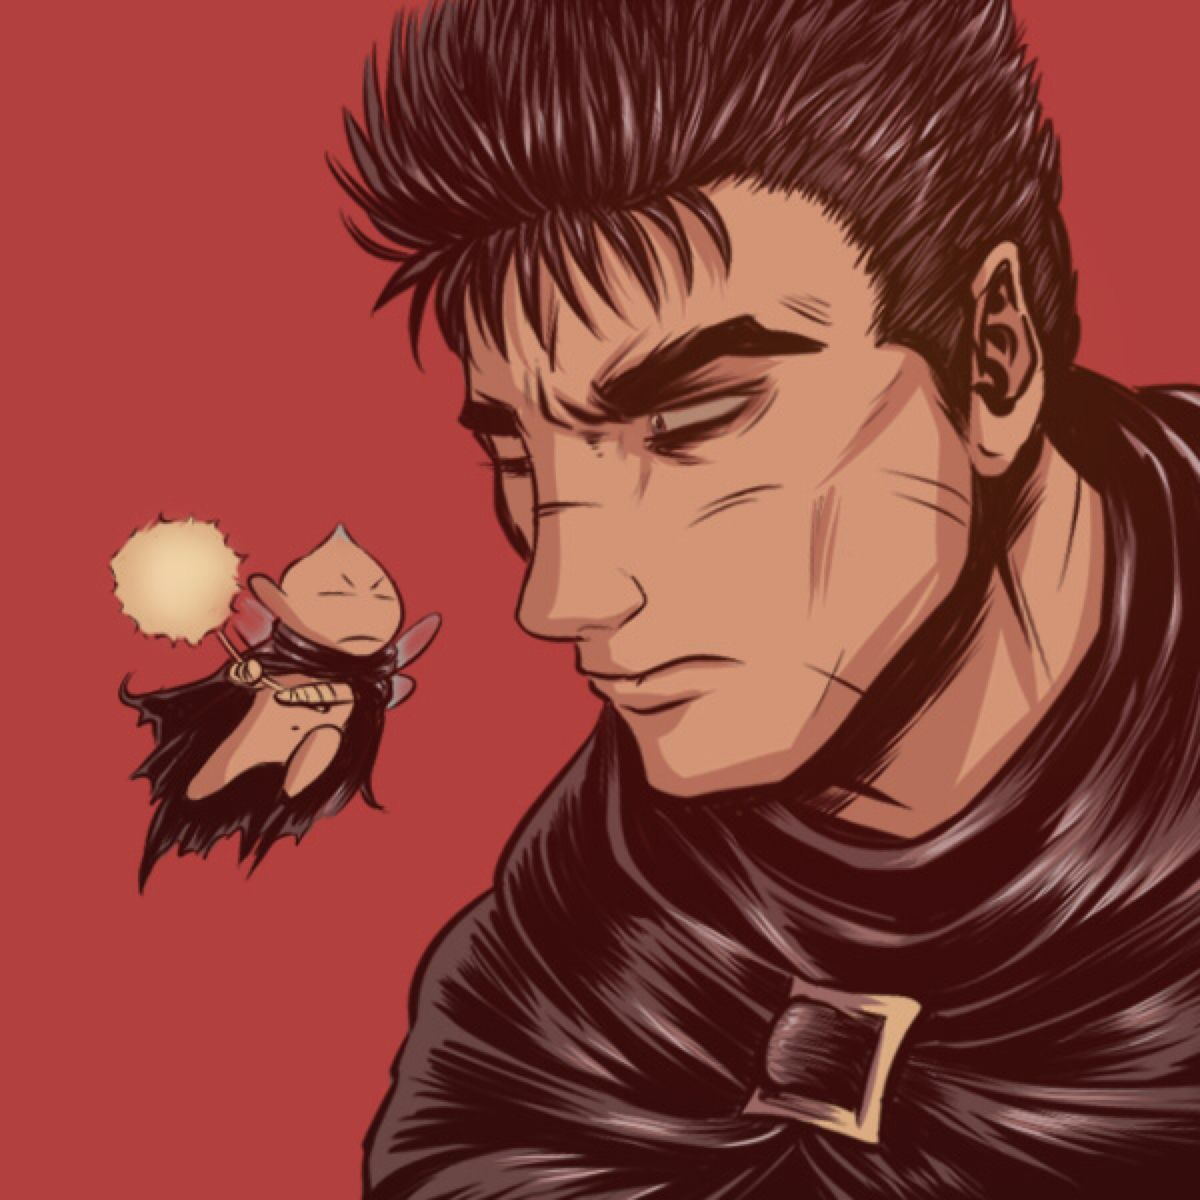 Pin by R Cee on Anime (With images) Berserk, Anime, Old